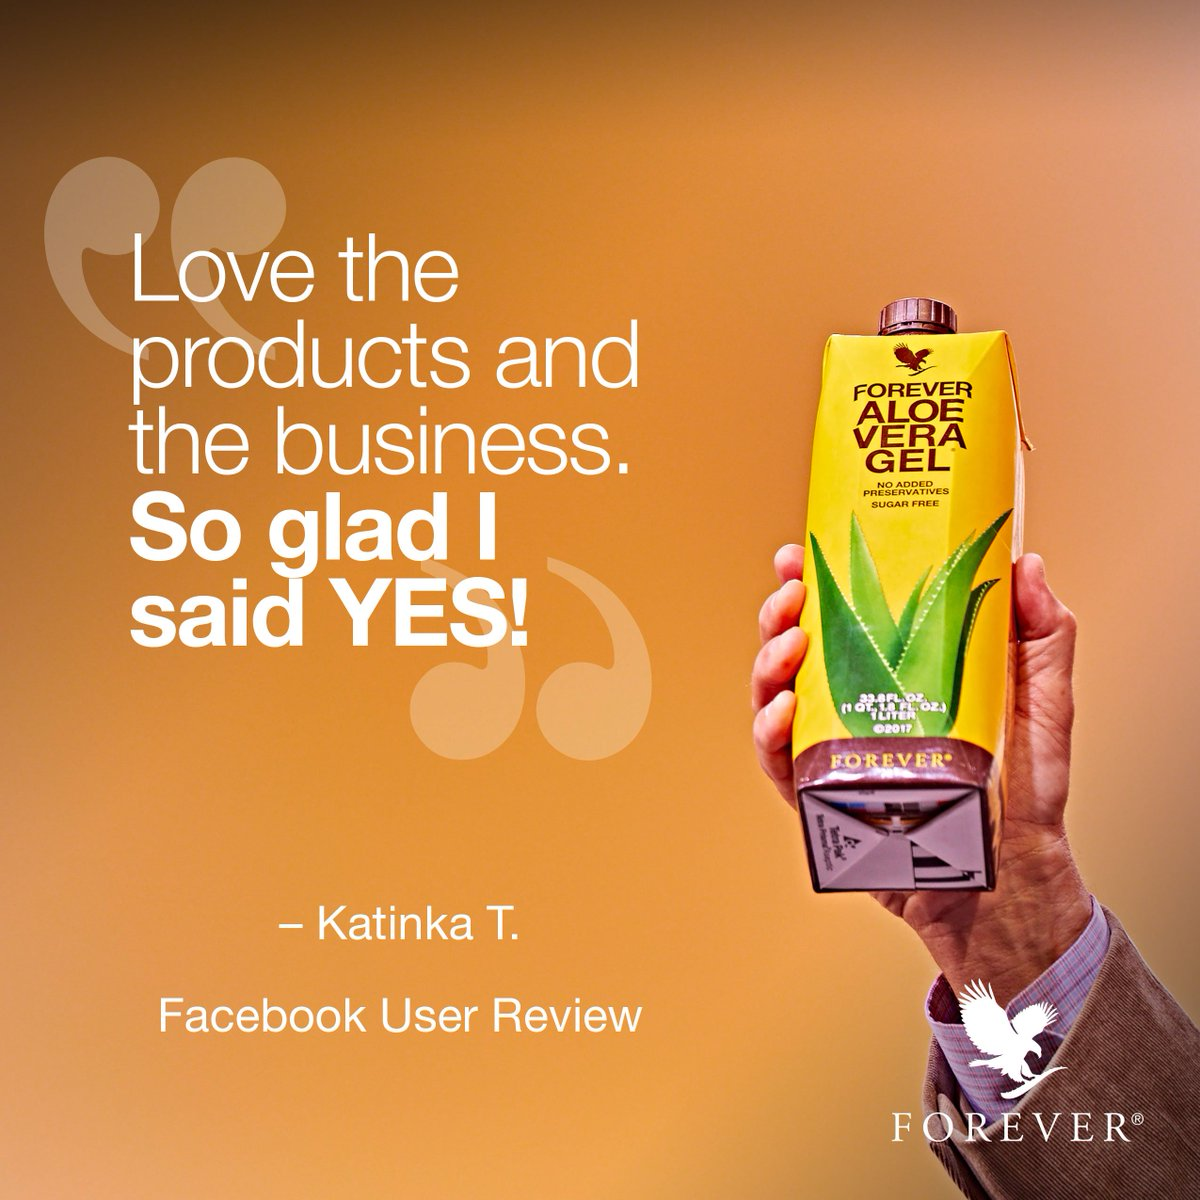 Forever Living Products International on Twitter: